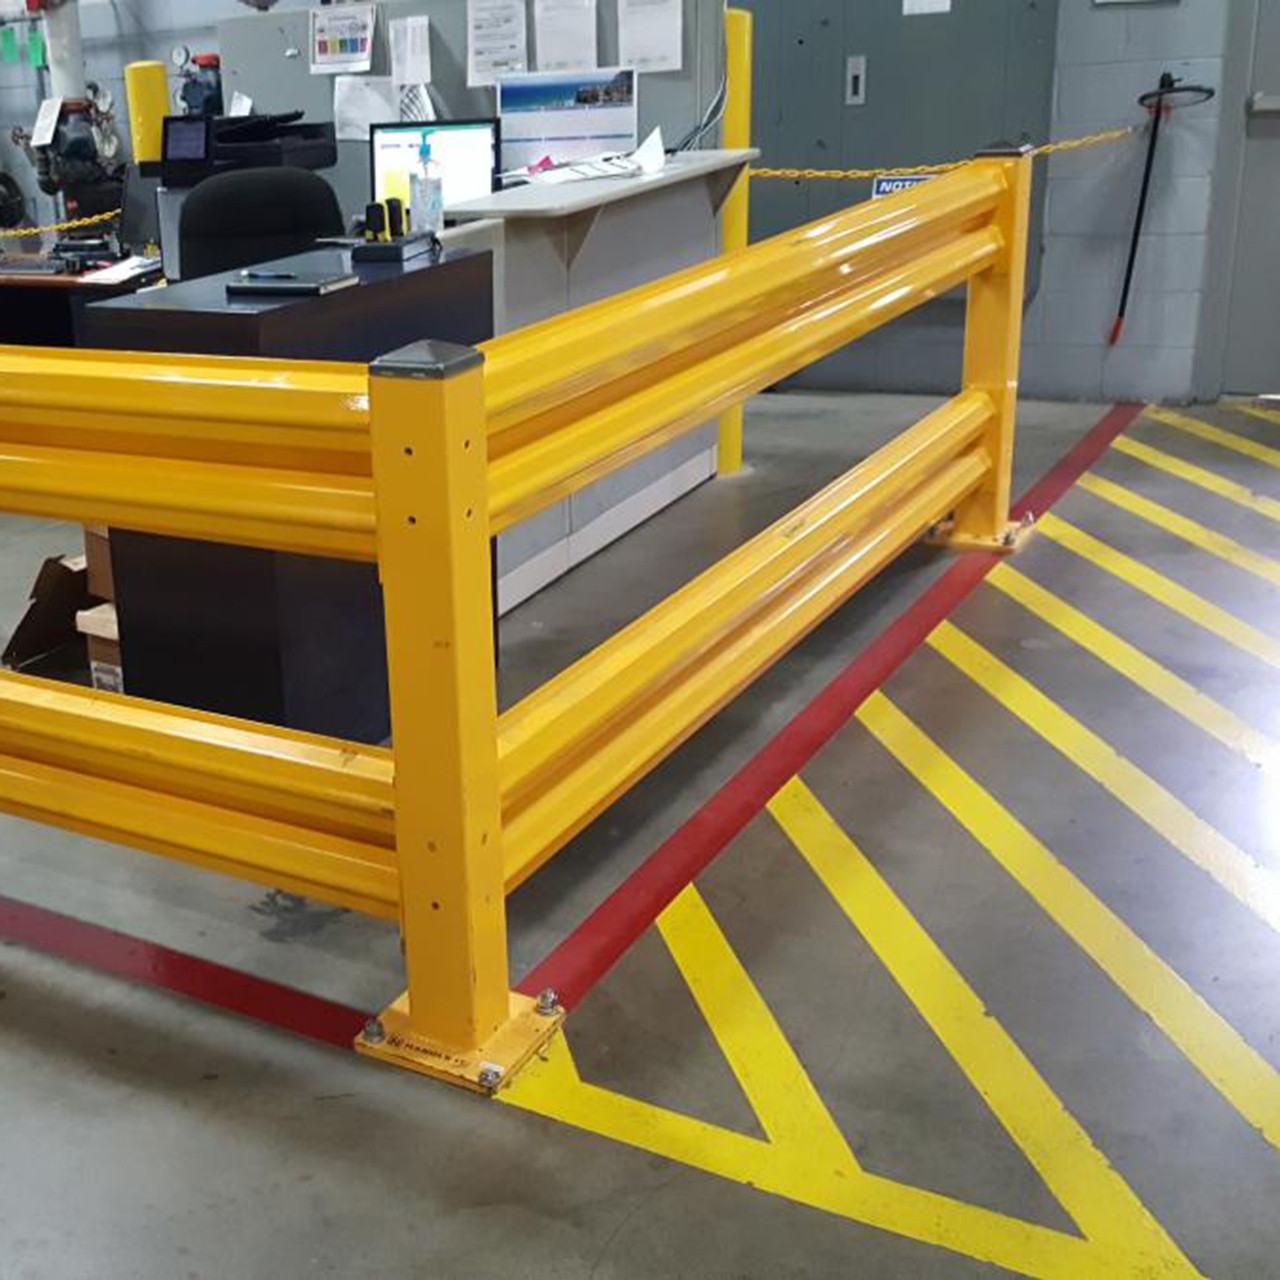 Guard rail assemblies can be used in any area that requires protection